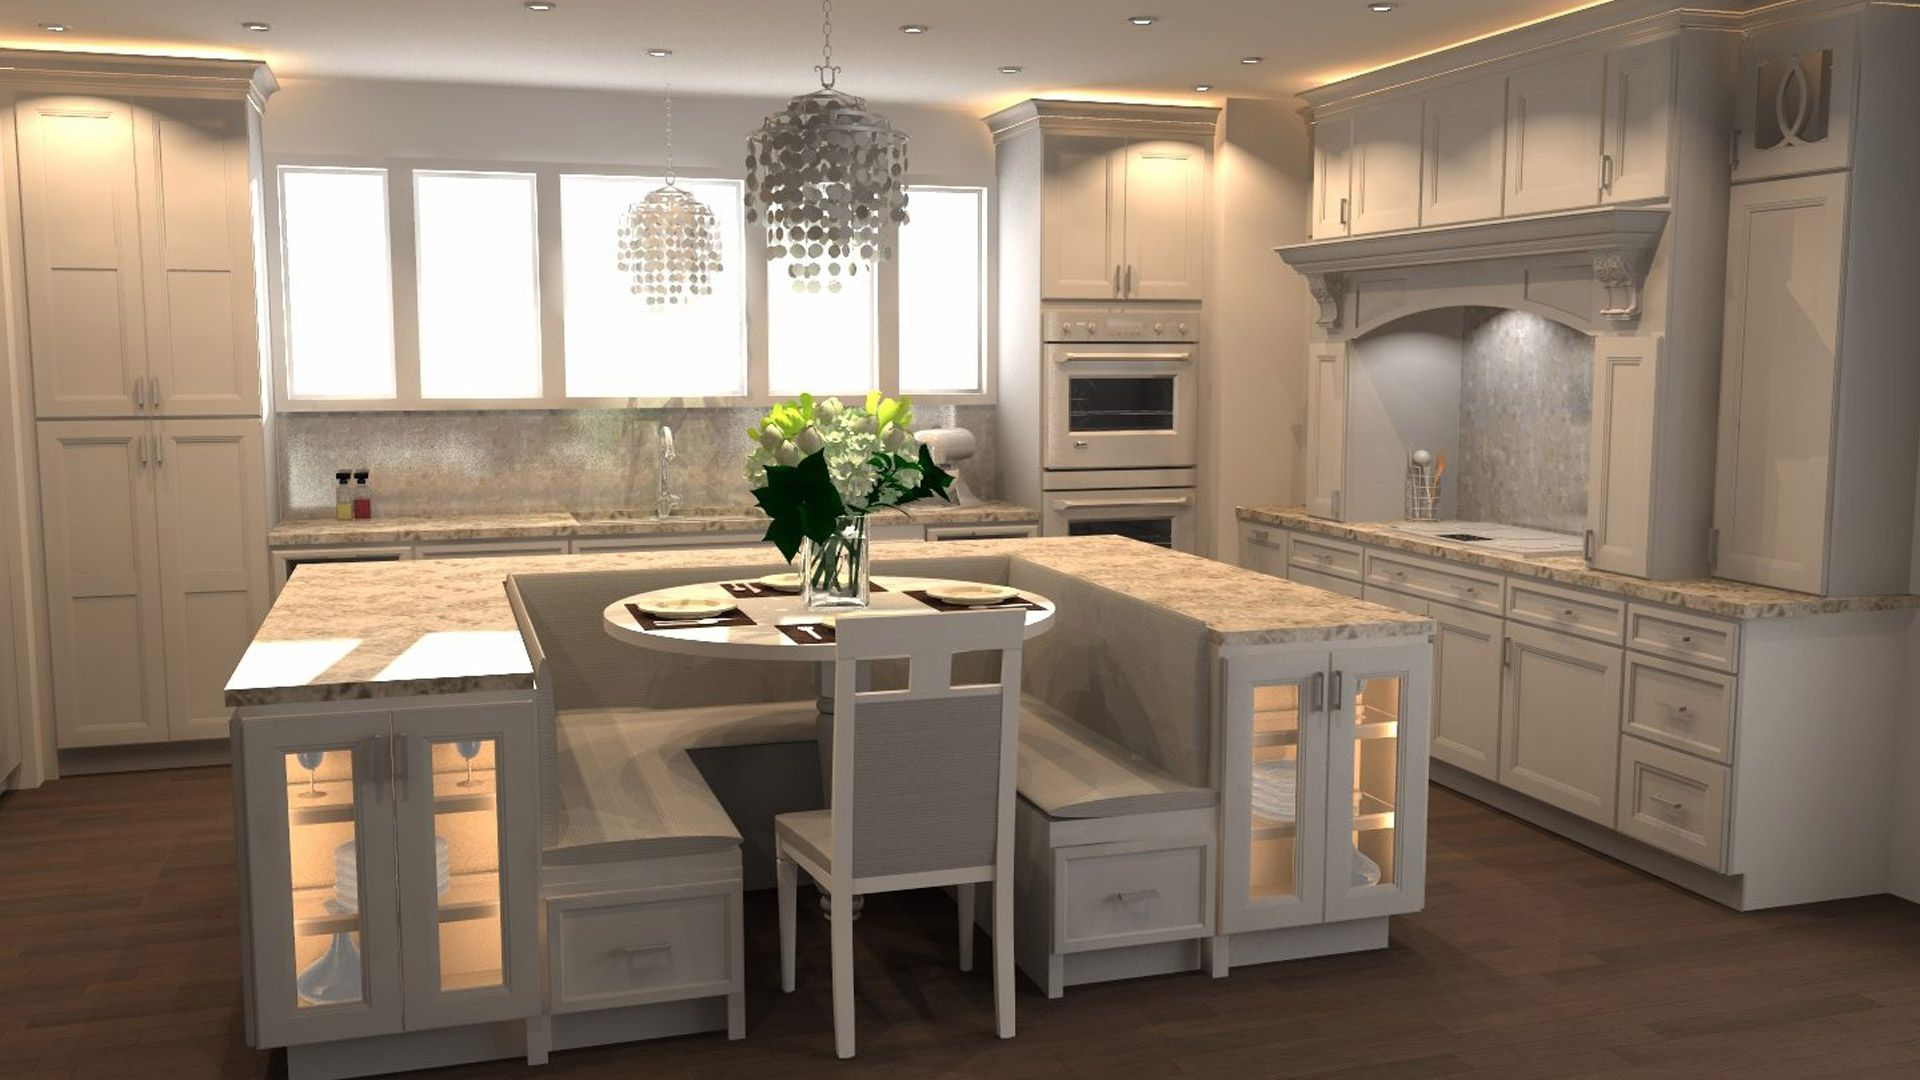 2020 Design Kitchen Remodel Design Kitchen Design Kitchen